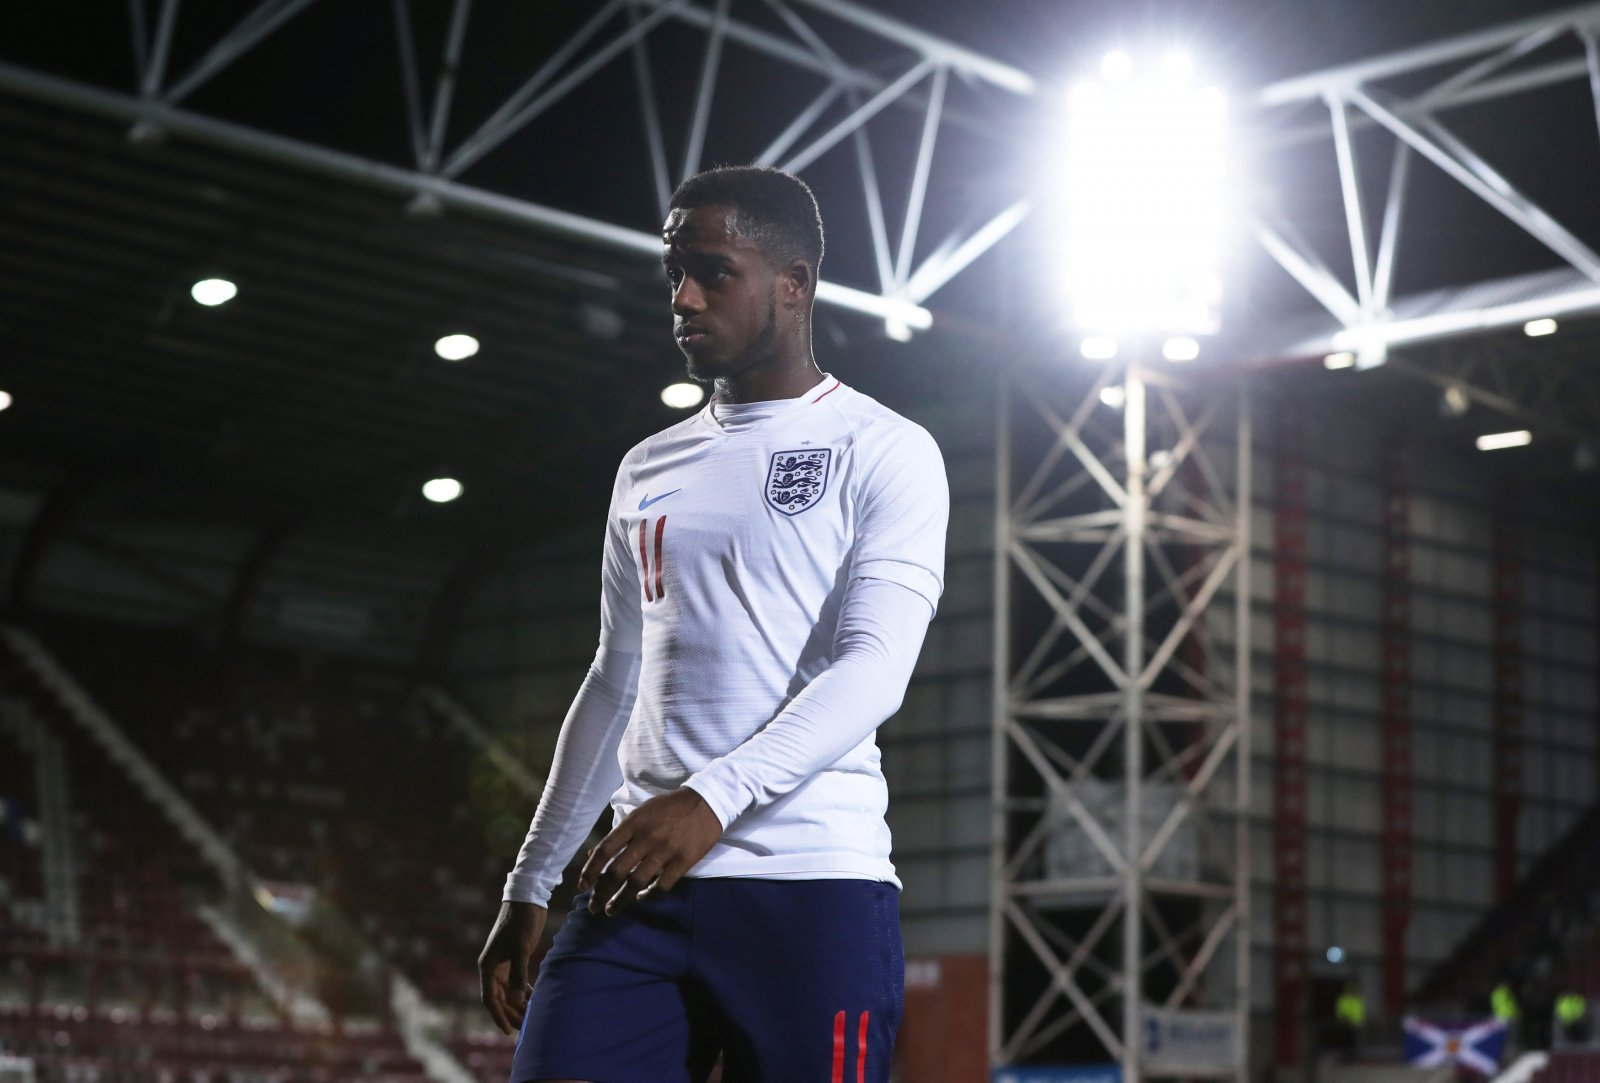 Liverpool would be very smart to acquire Ryan Sessegnon